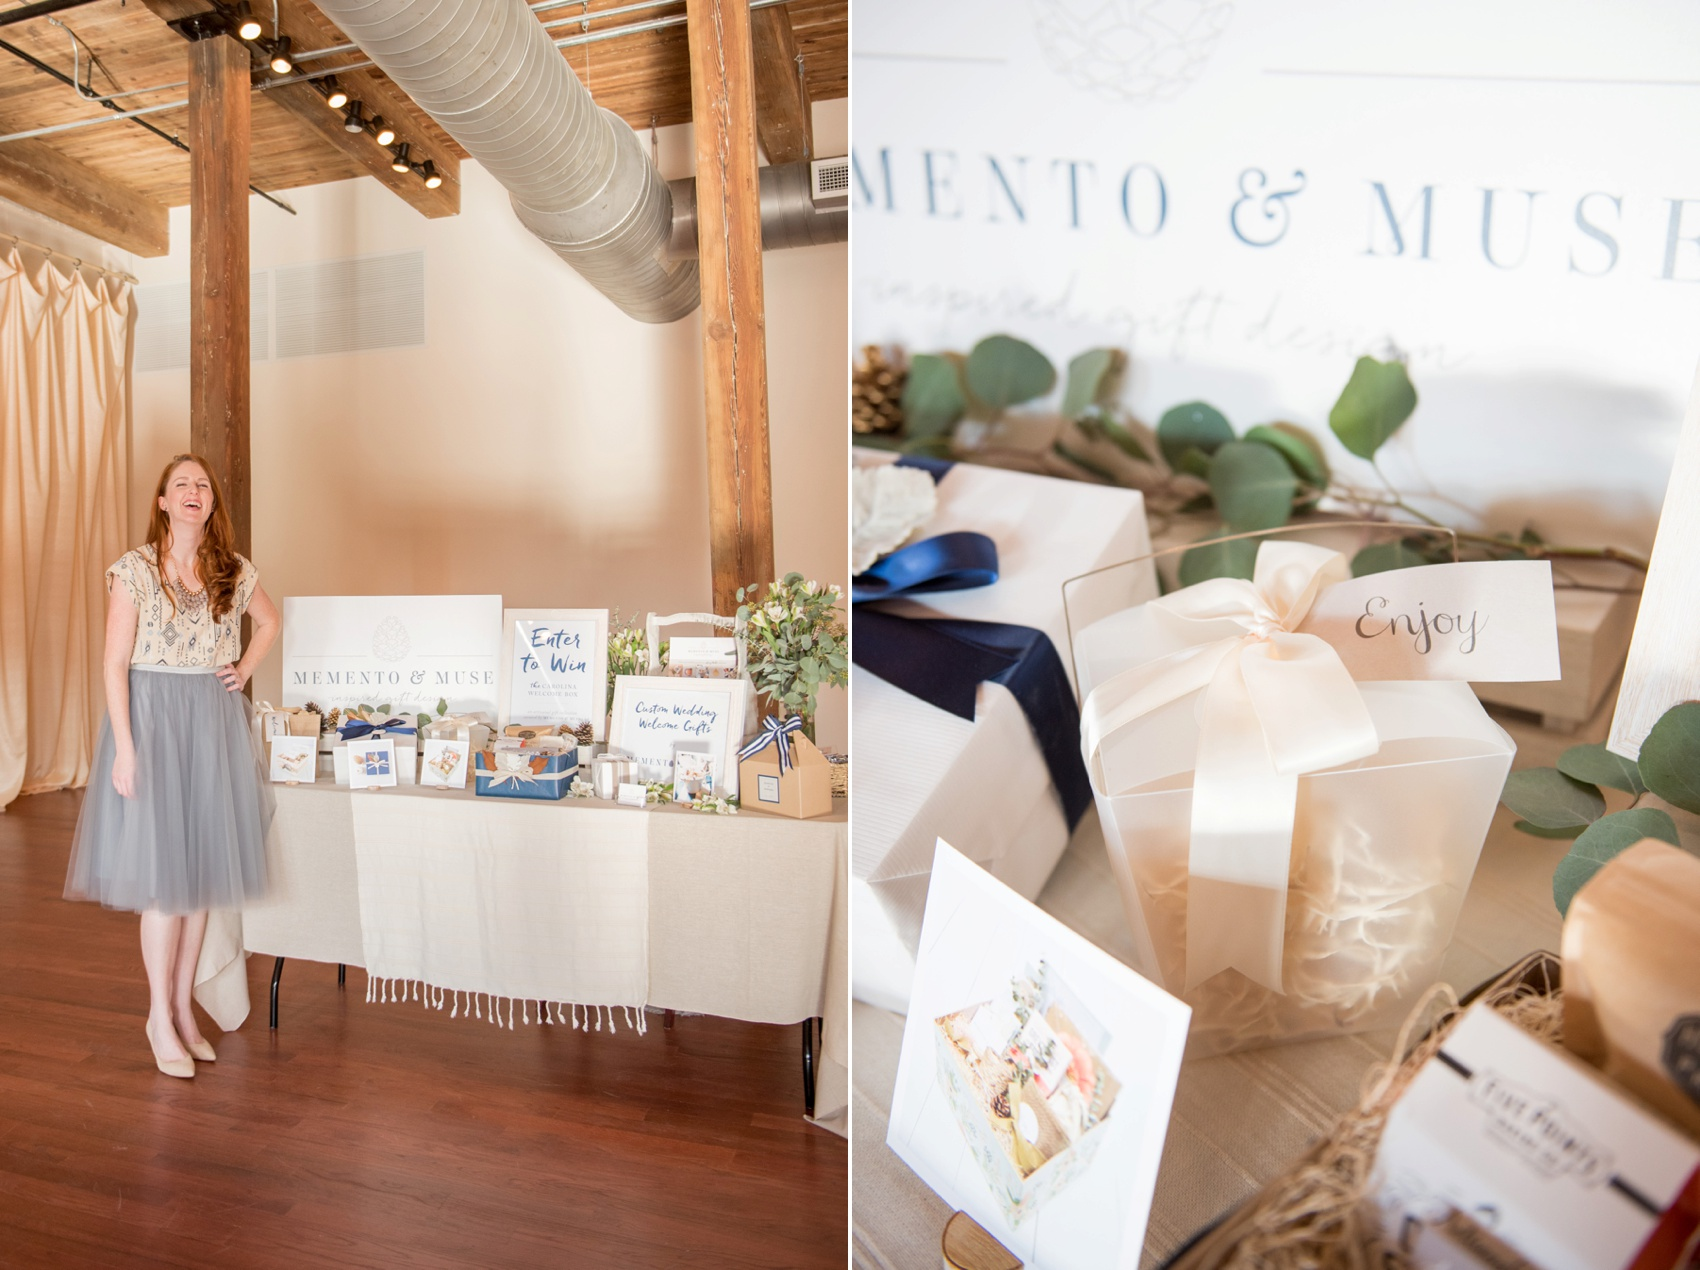 The Cloth Mill North Carolina wedding vendor showcase. Raleigh, Durham and Hillsborough vendors at a rustic, modern location. Memento and Muse gift boxes table display.